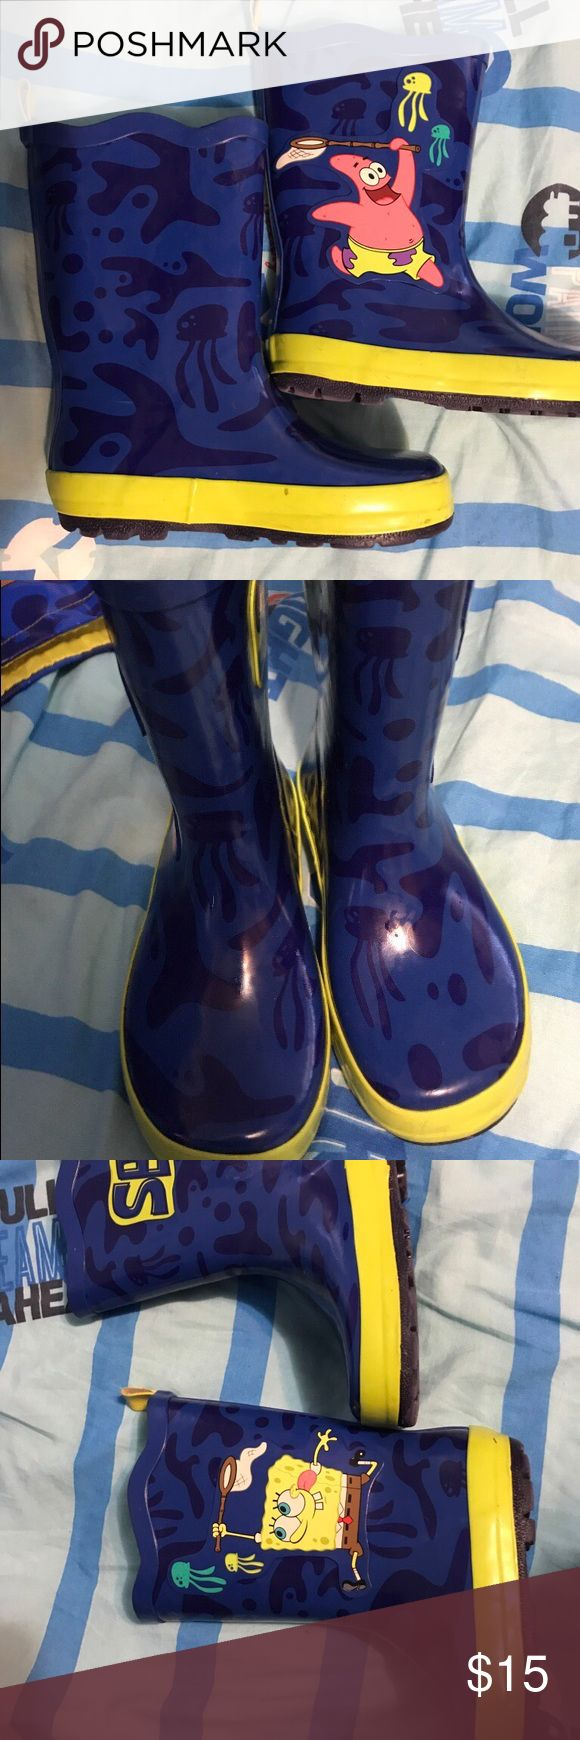 Boys rain boots SpongeBob and Patrick rain boots good condition yellow and blue size 11, non-smoking home barely worn Shoes Rain & Snow Boots